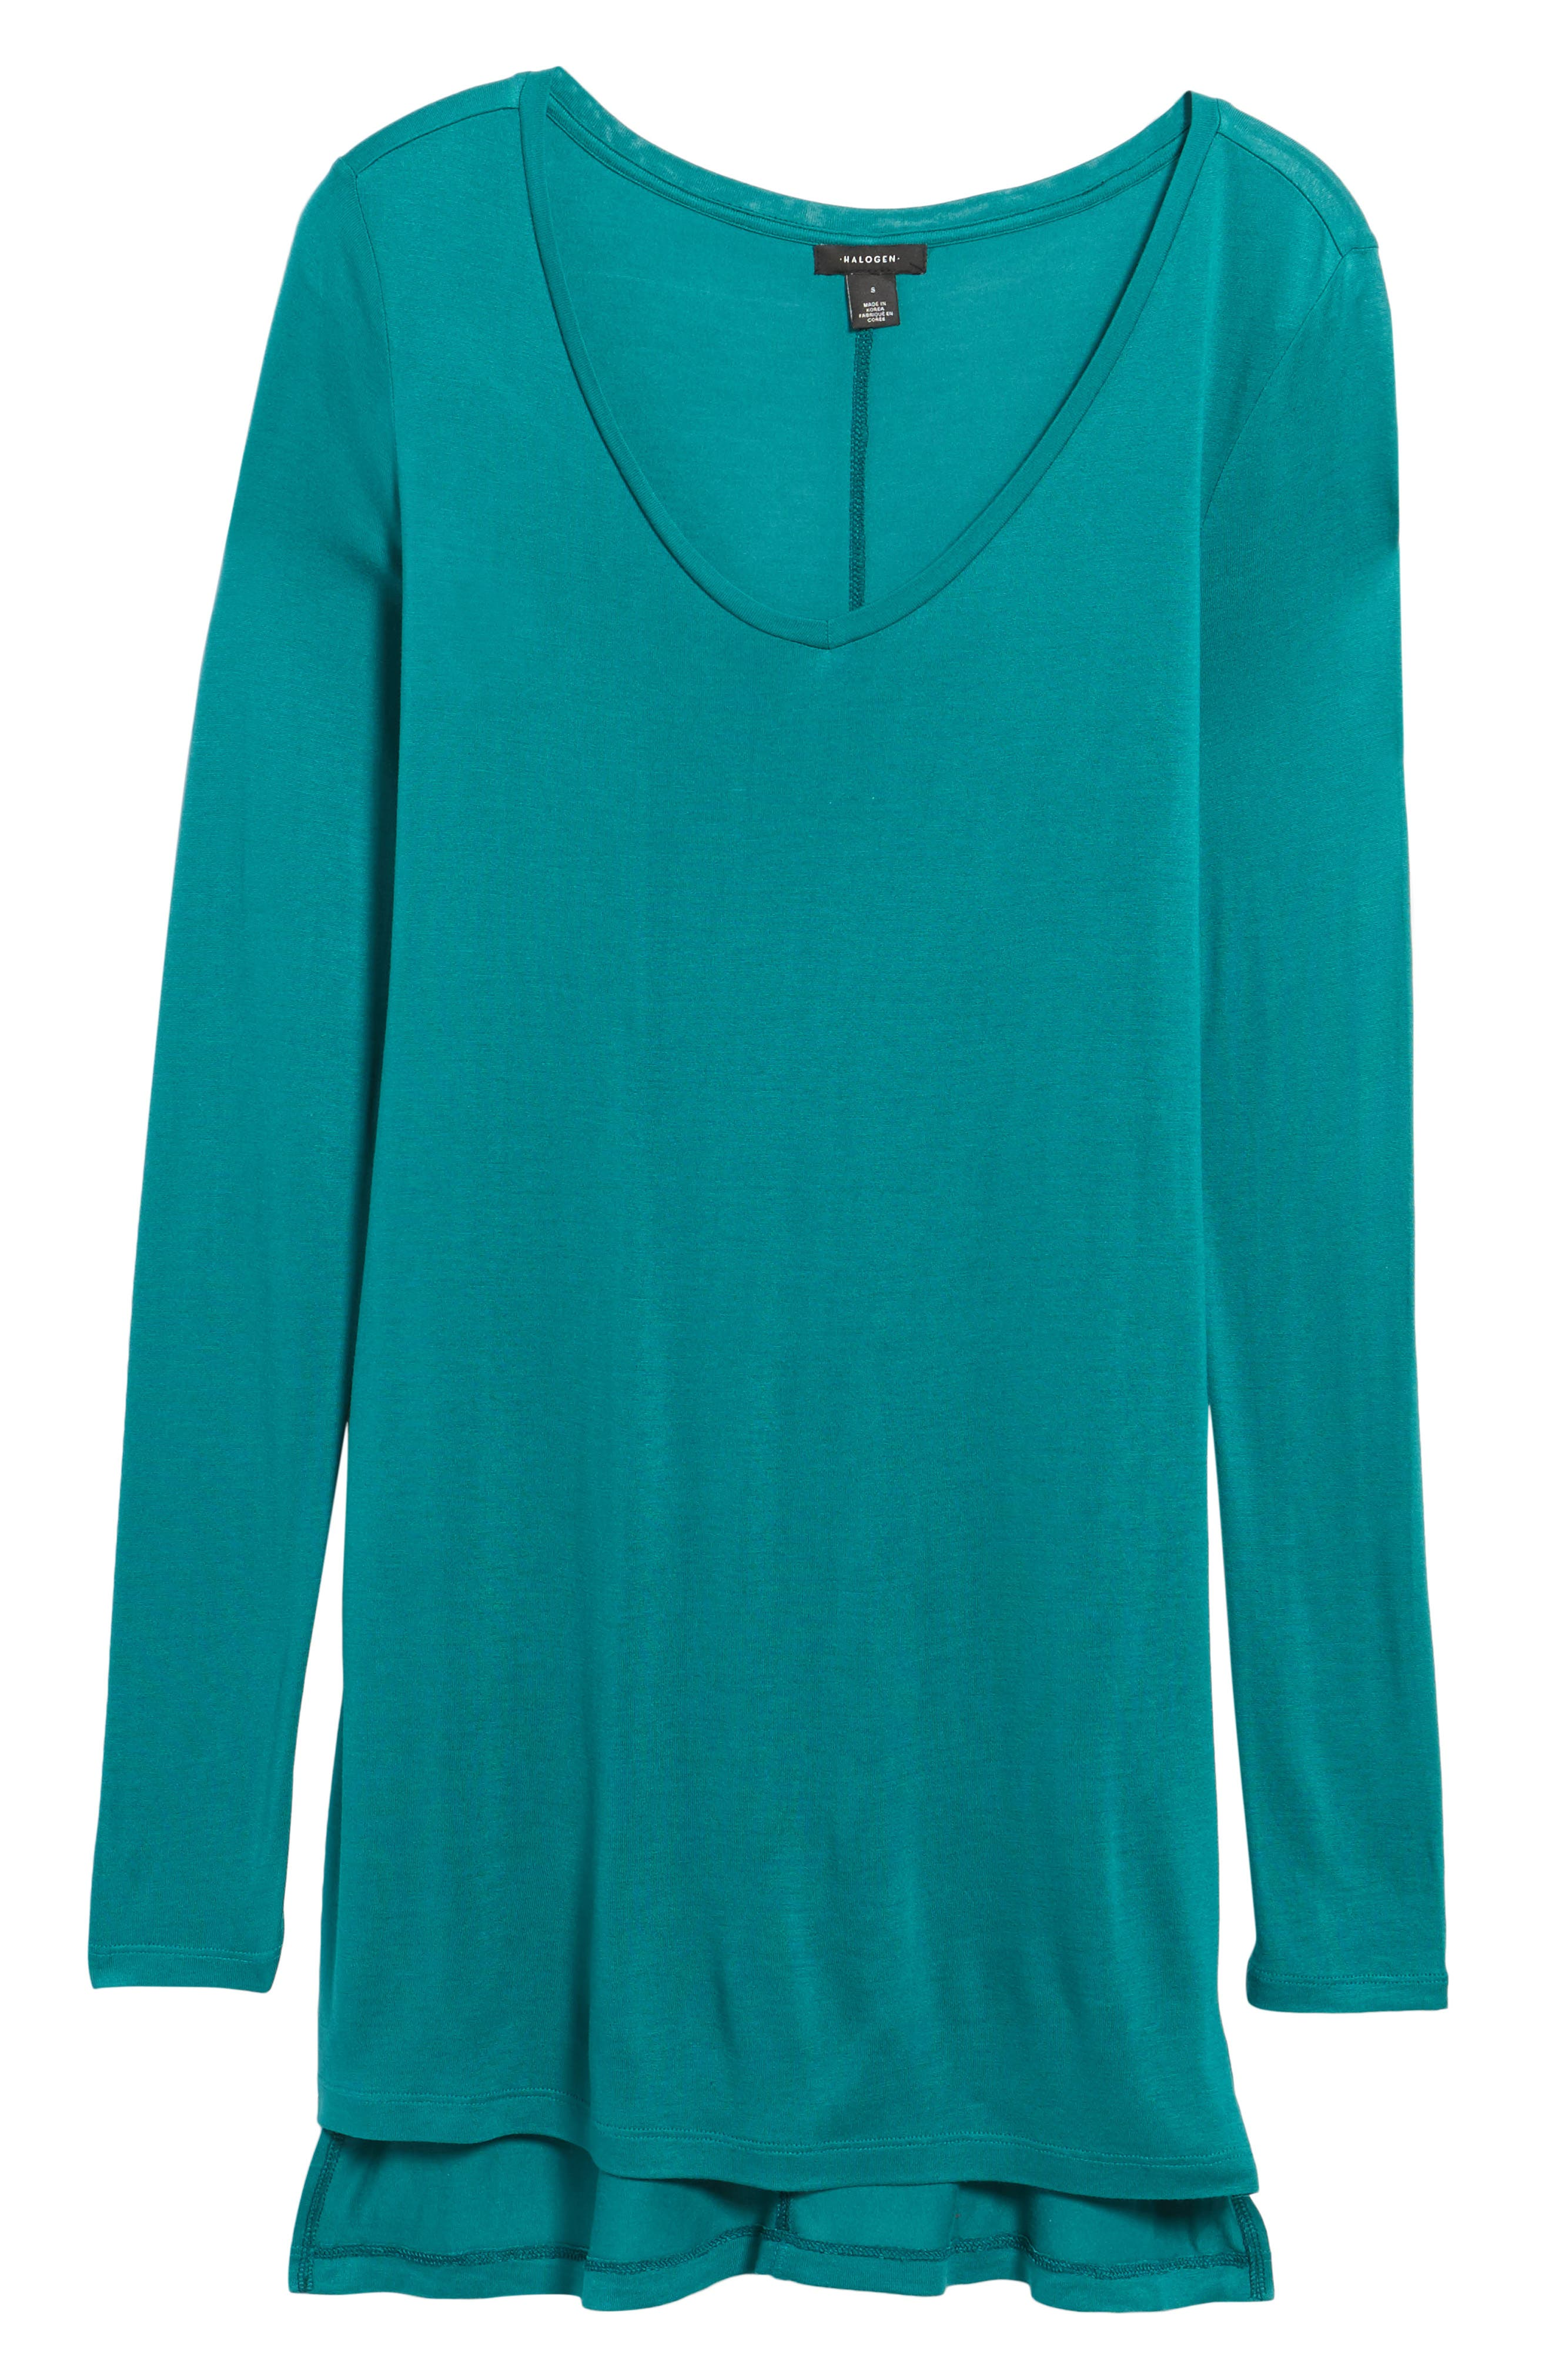 Long Sleeve Lightweight Tunic,                             Alternate thumbnail 6, color,                             Teal Green